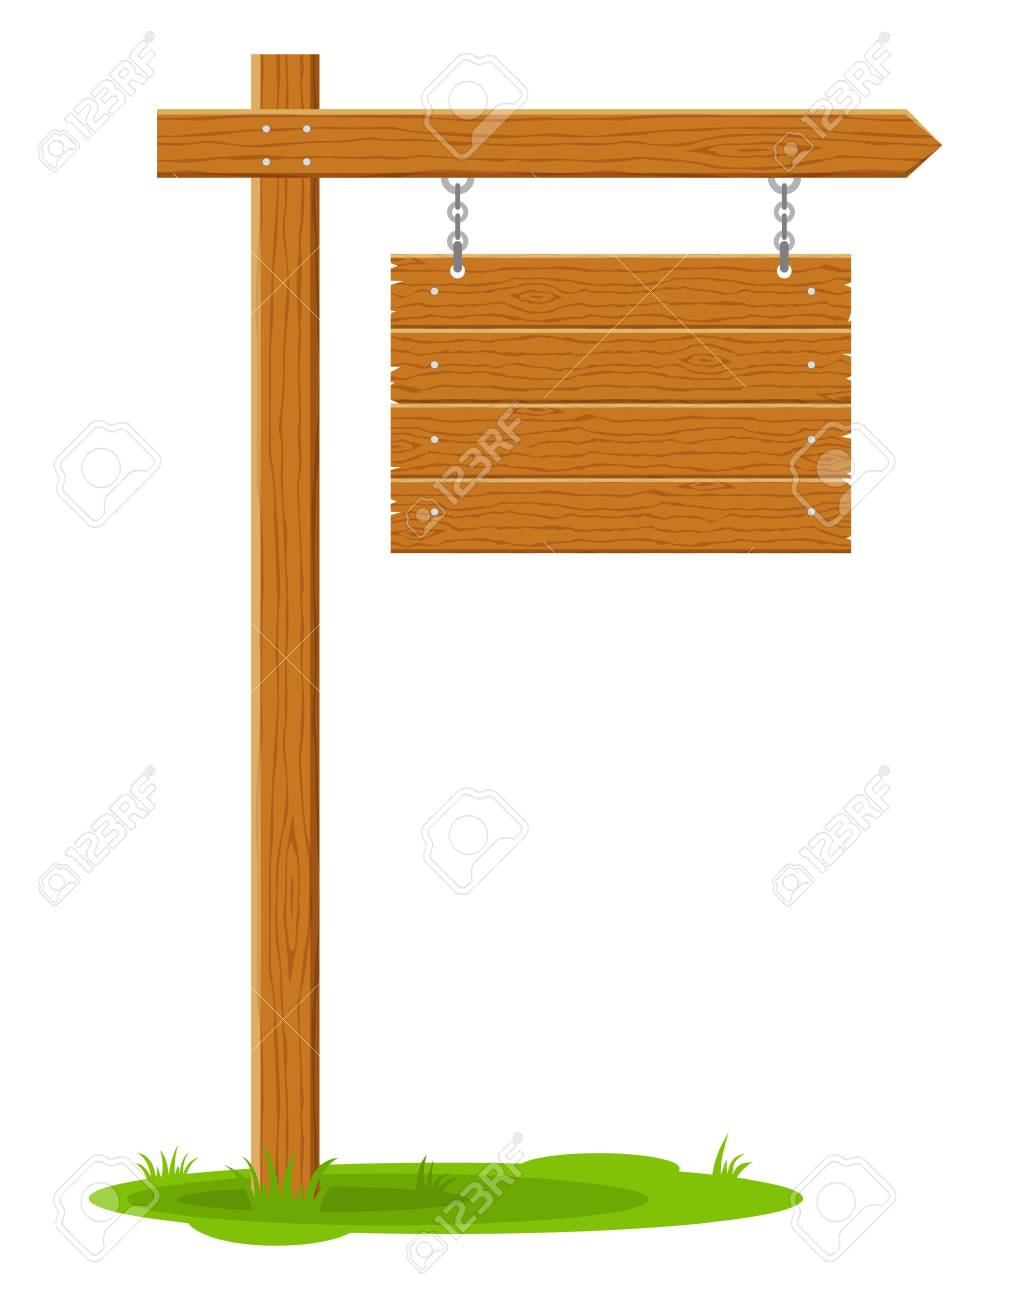 Sign Board Hanging To Communicate A Message On Street Or Road Emblems Of Signages Banner Template With Wood Texture Vector Illustration